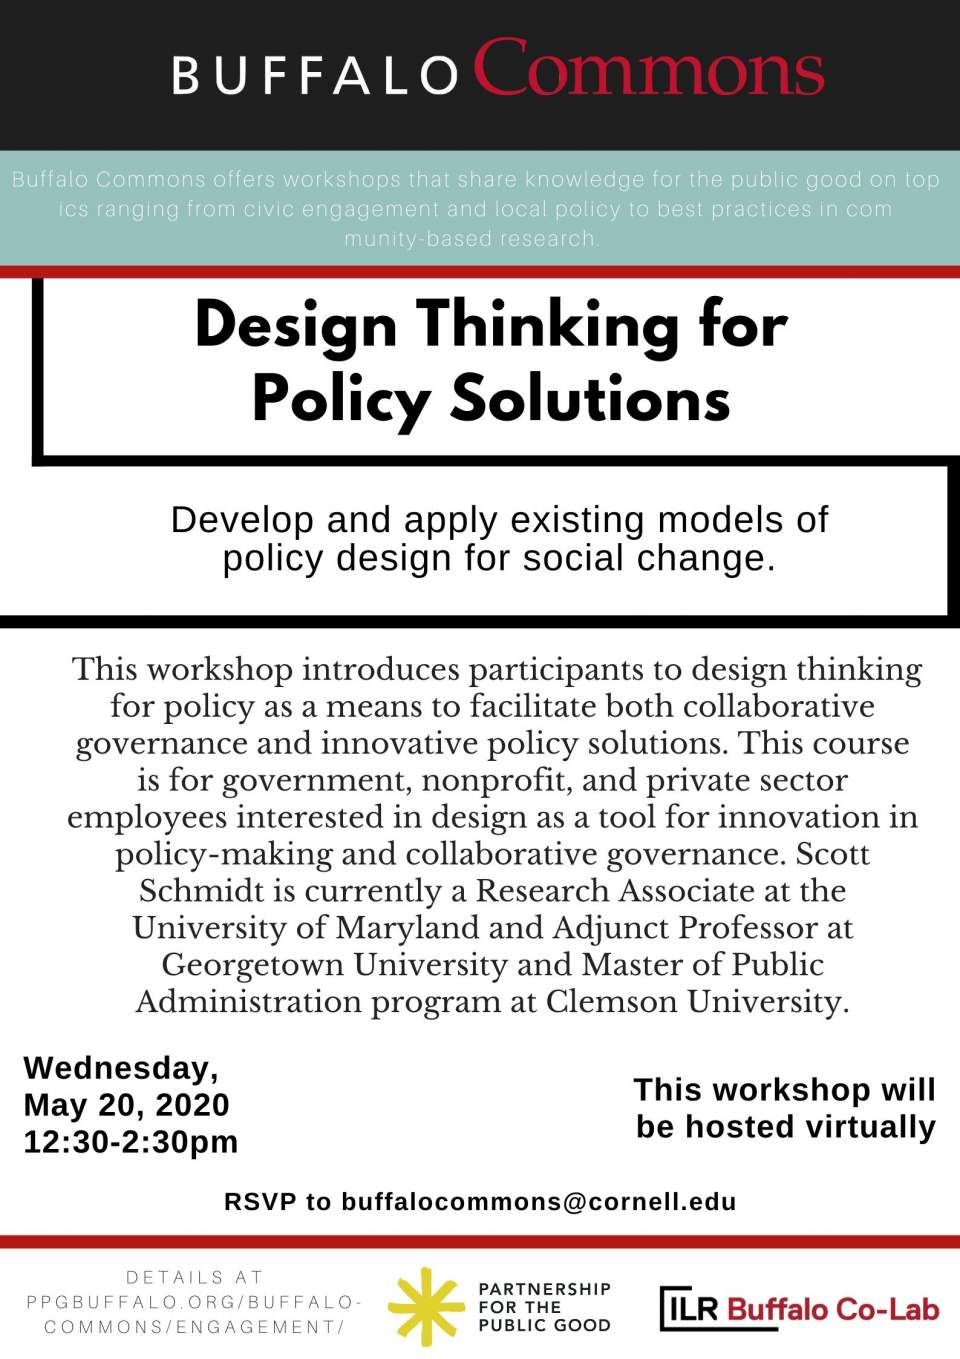 Buffalo Commons Virtual Workshop: Design Thinking for Policy Solutions